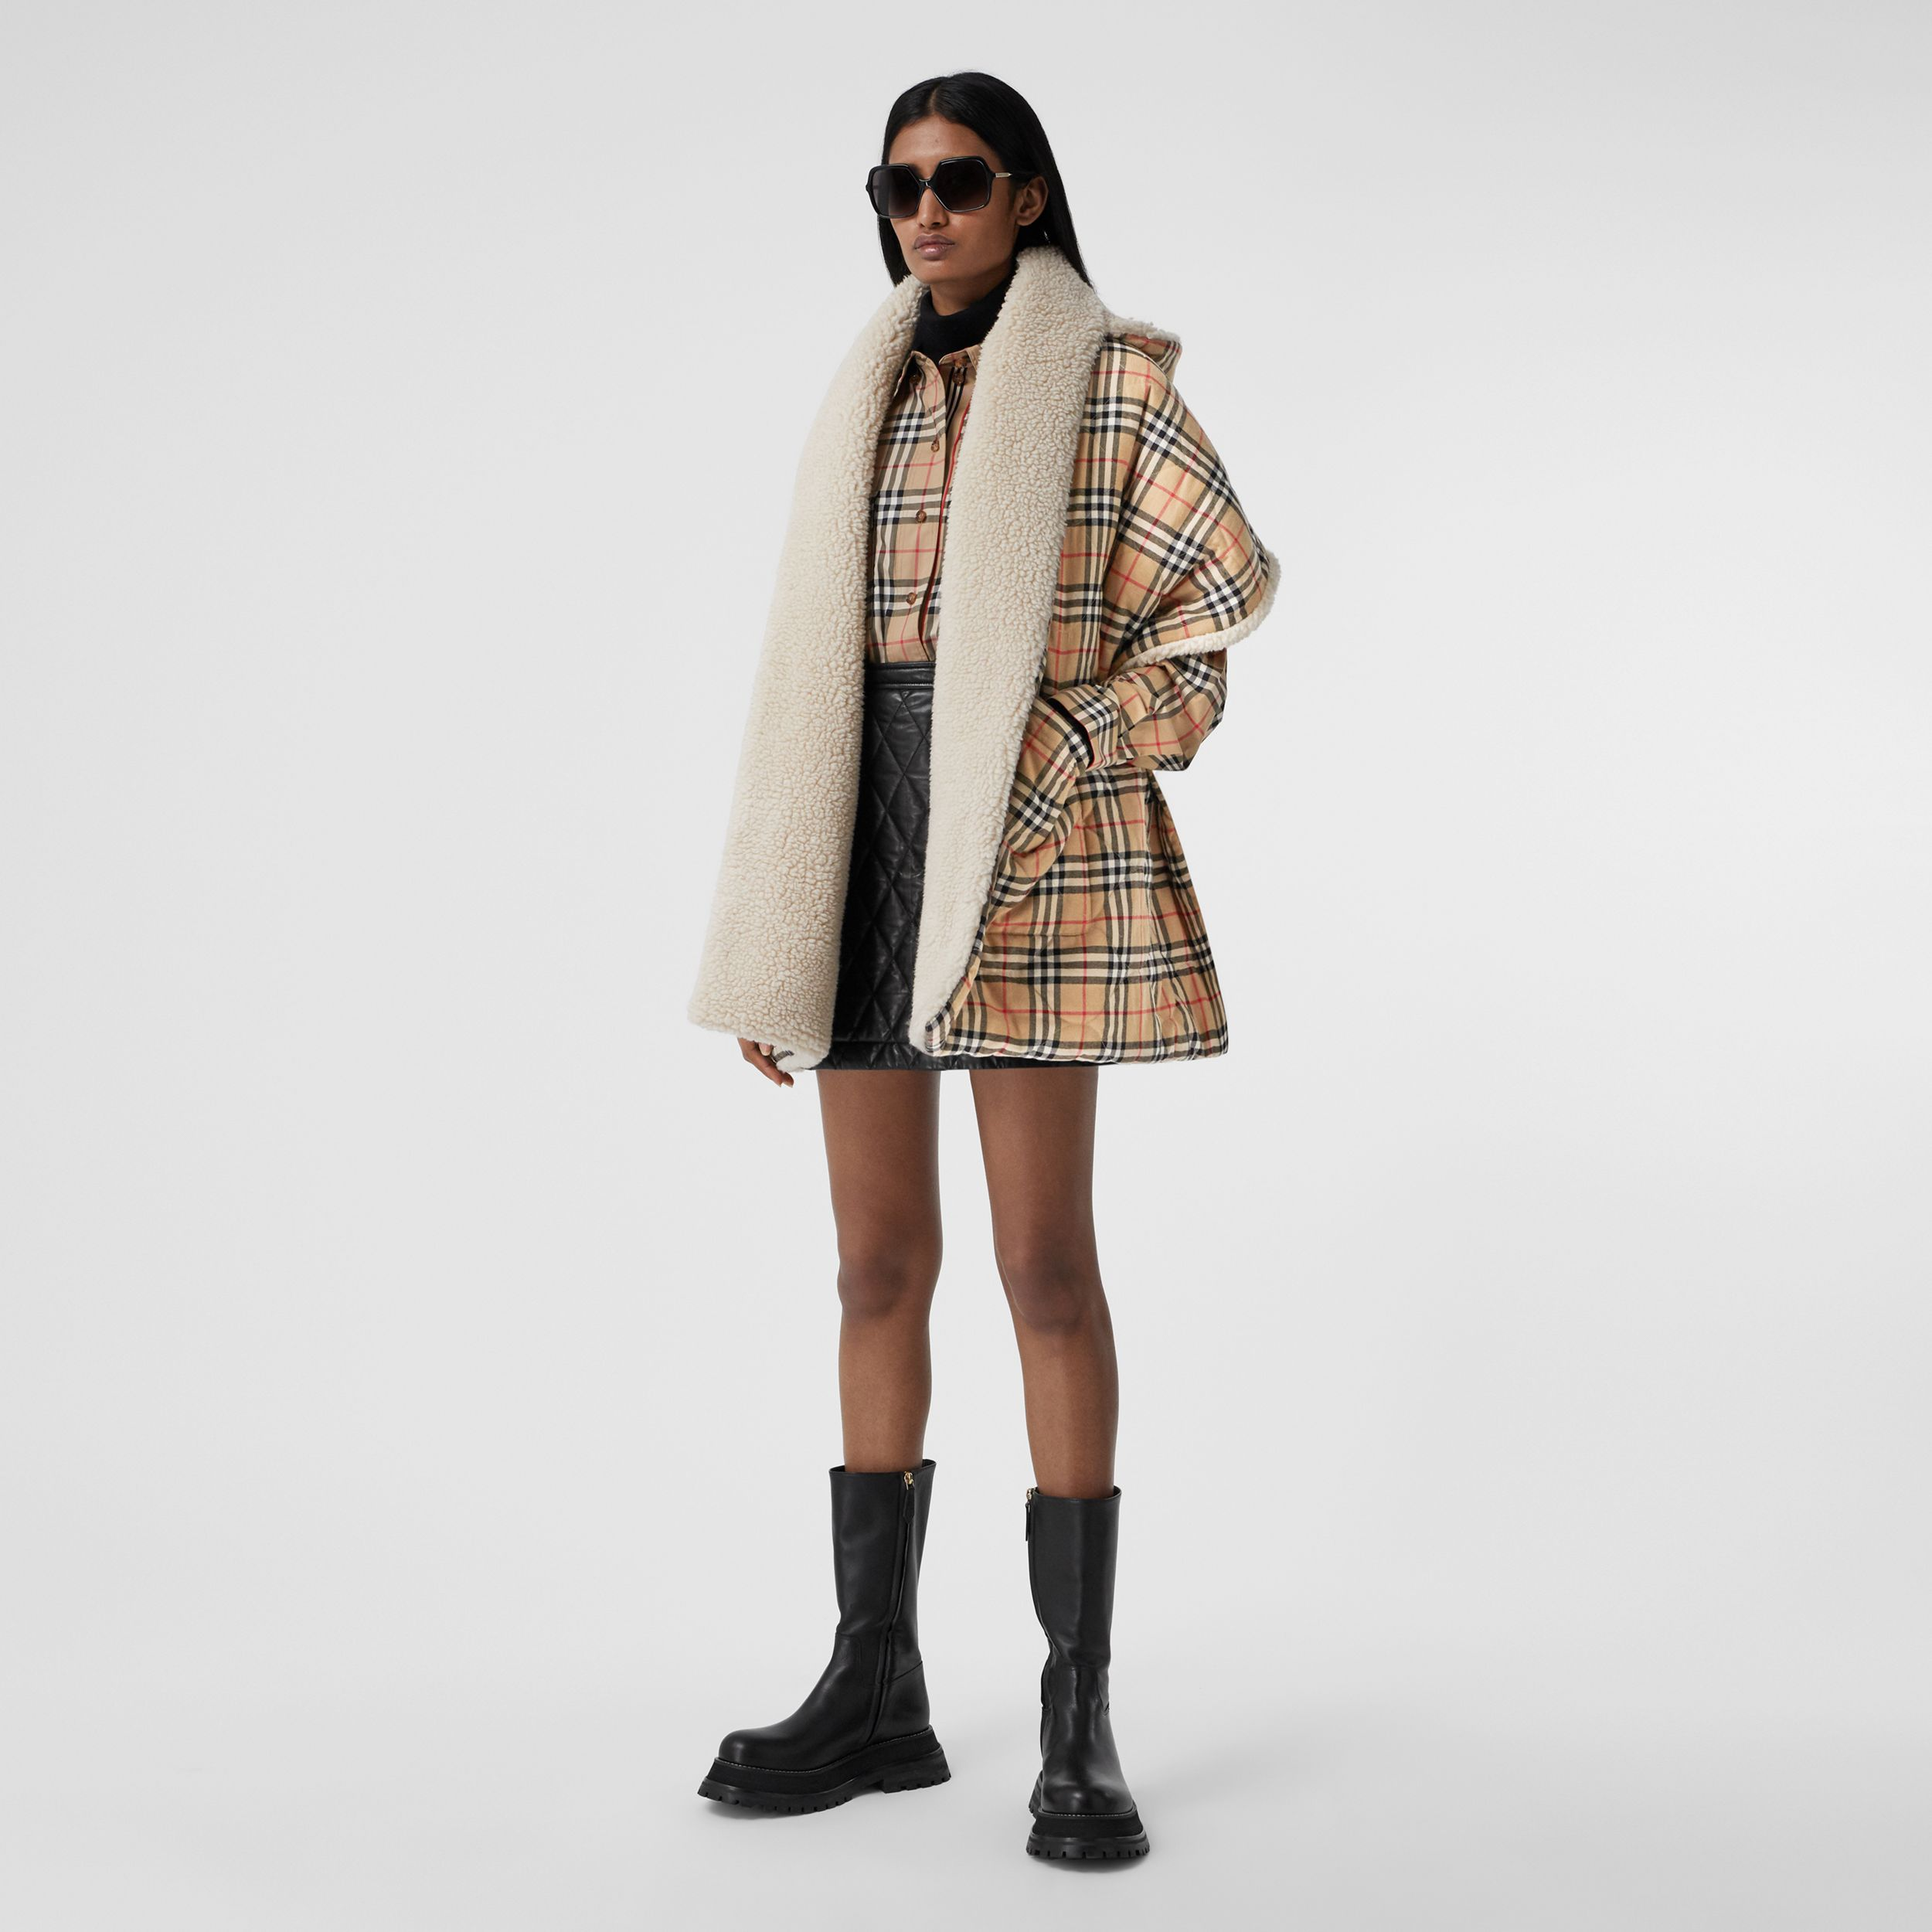 Fleece-lined Vintage Check Cotton Hooded Cape in Camel - Women | Burberry - 1